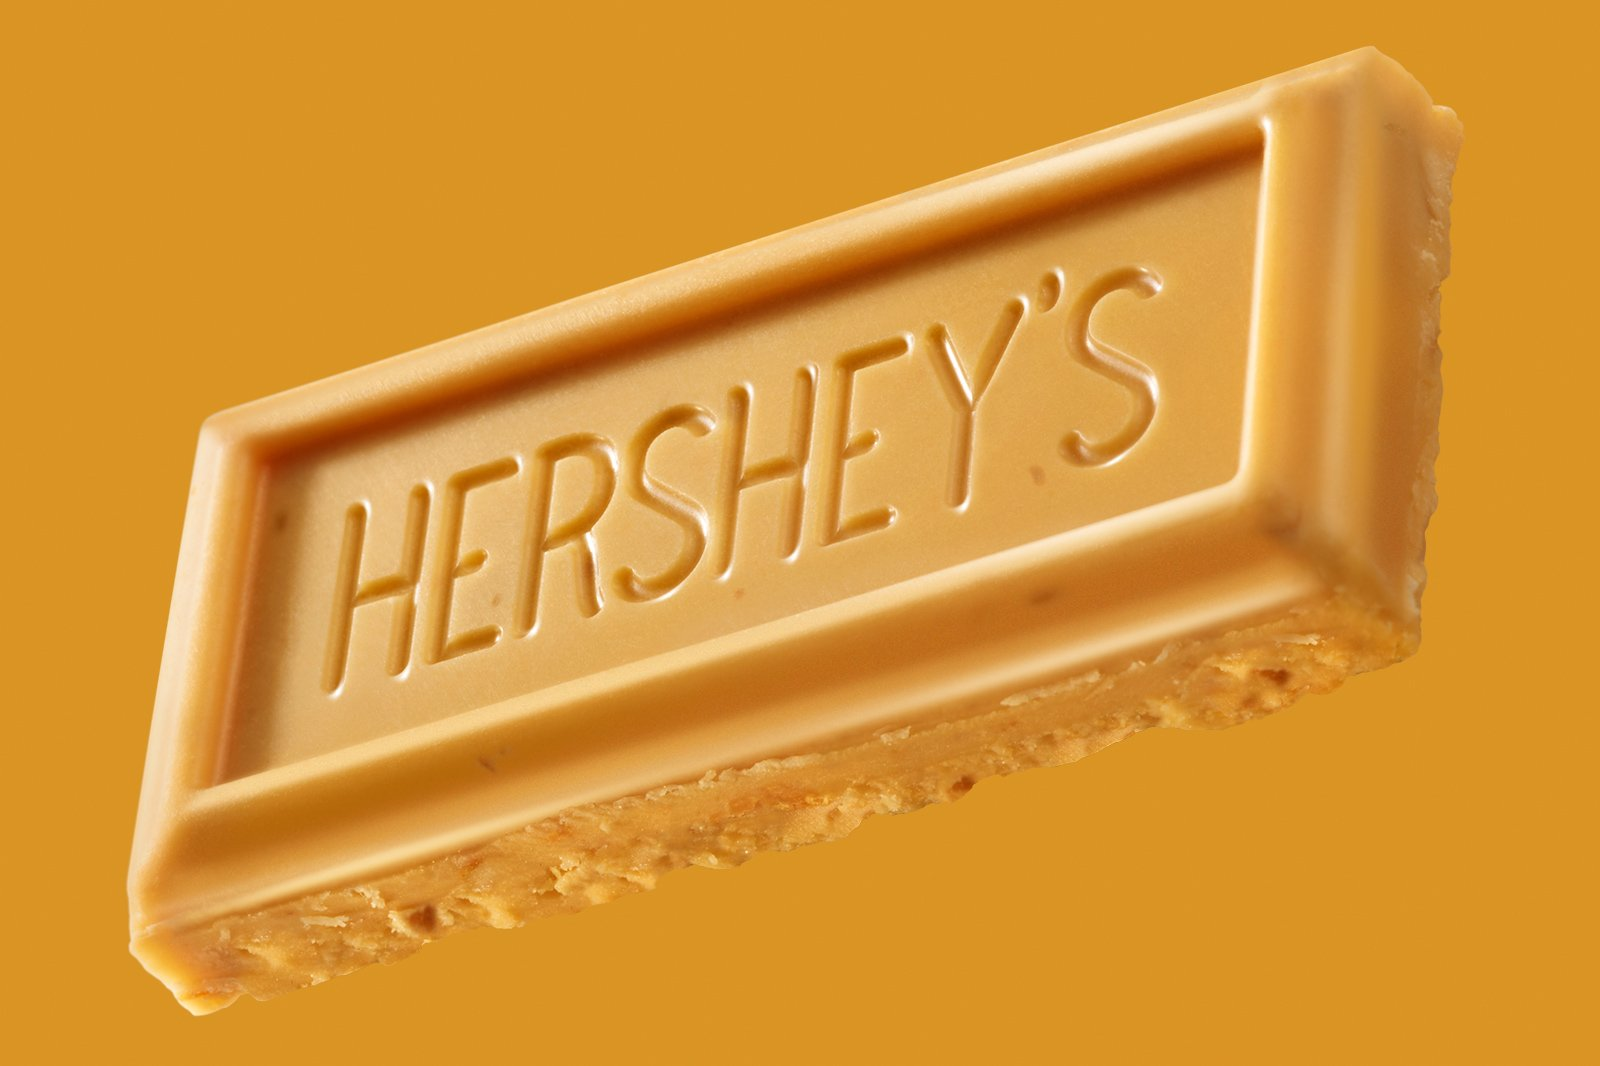 Retouching | Hershey's Pretzel Peanut Chocolate After Image